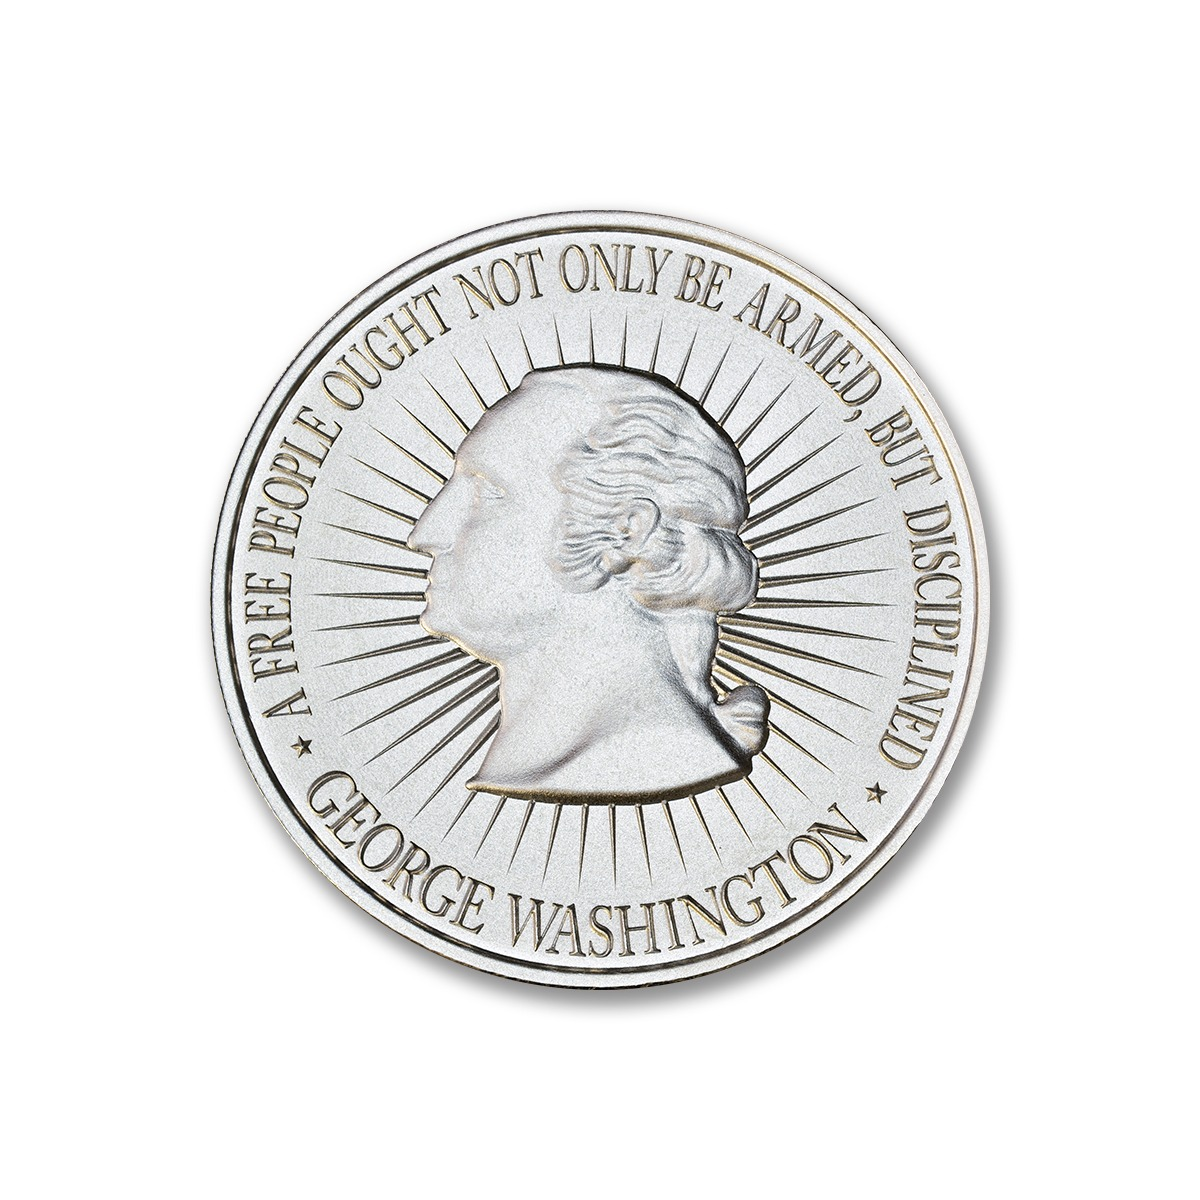 WASHINGTON BUST / BILL OF RIGHTS 2A – 1 TROY OUNCE – 39MM